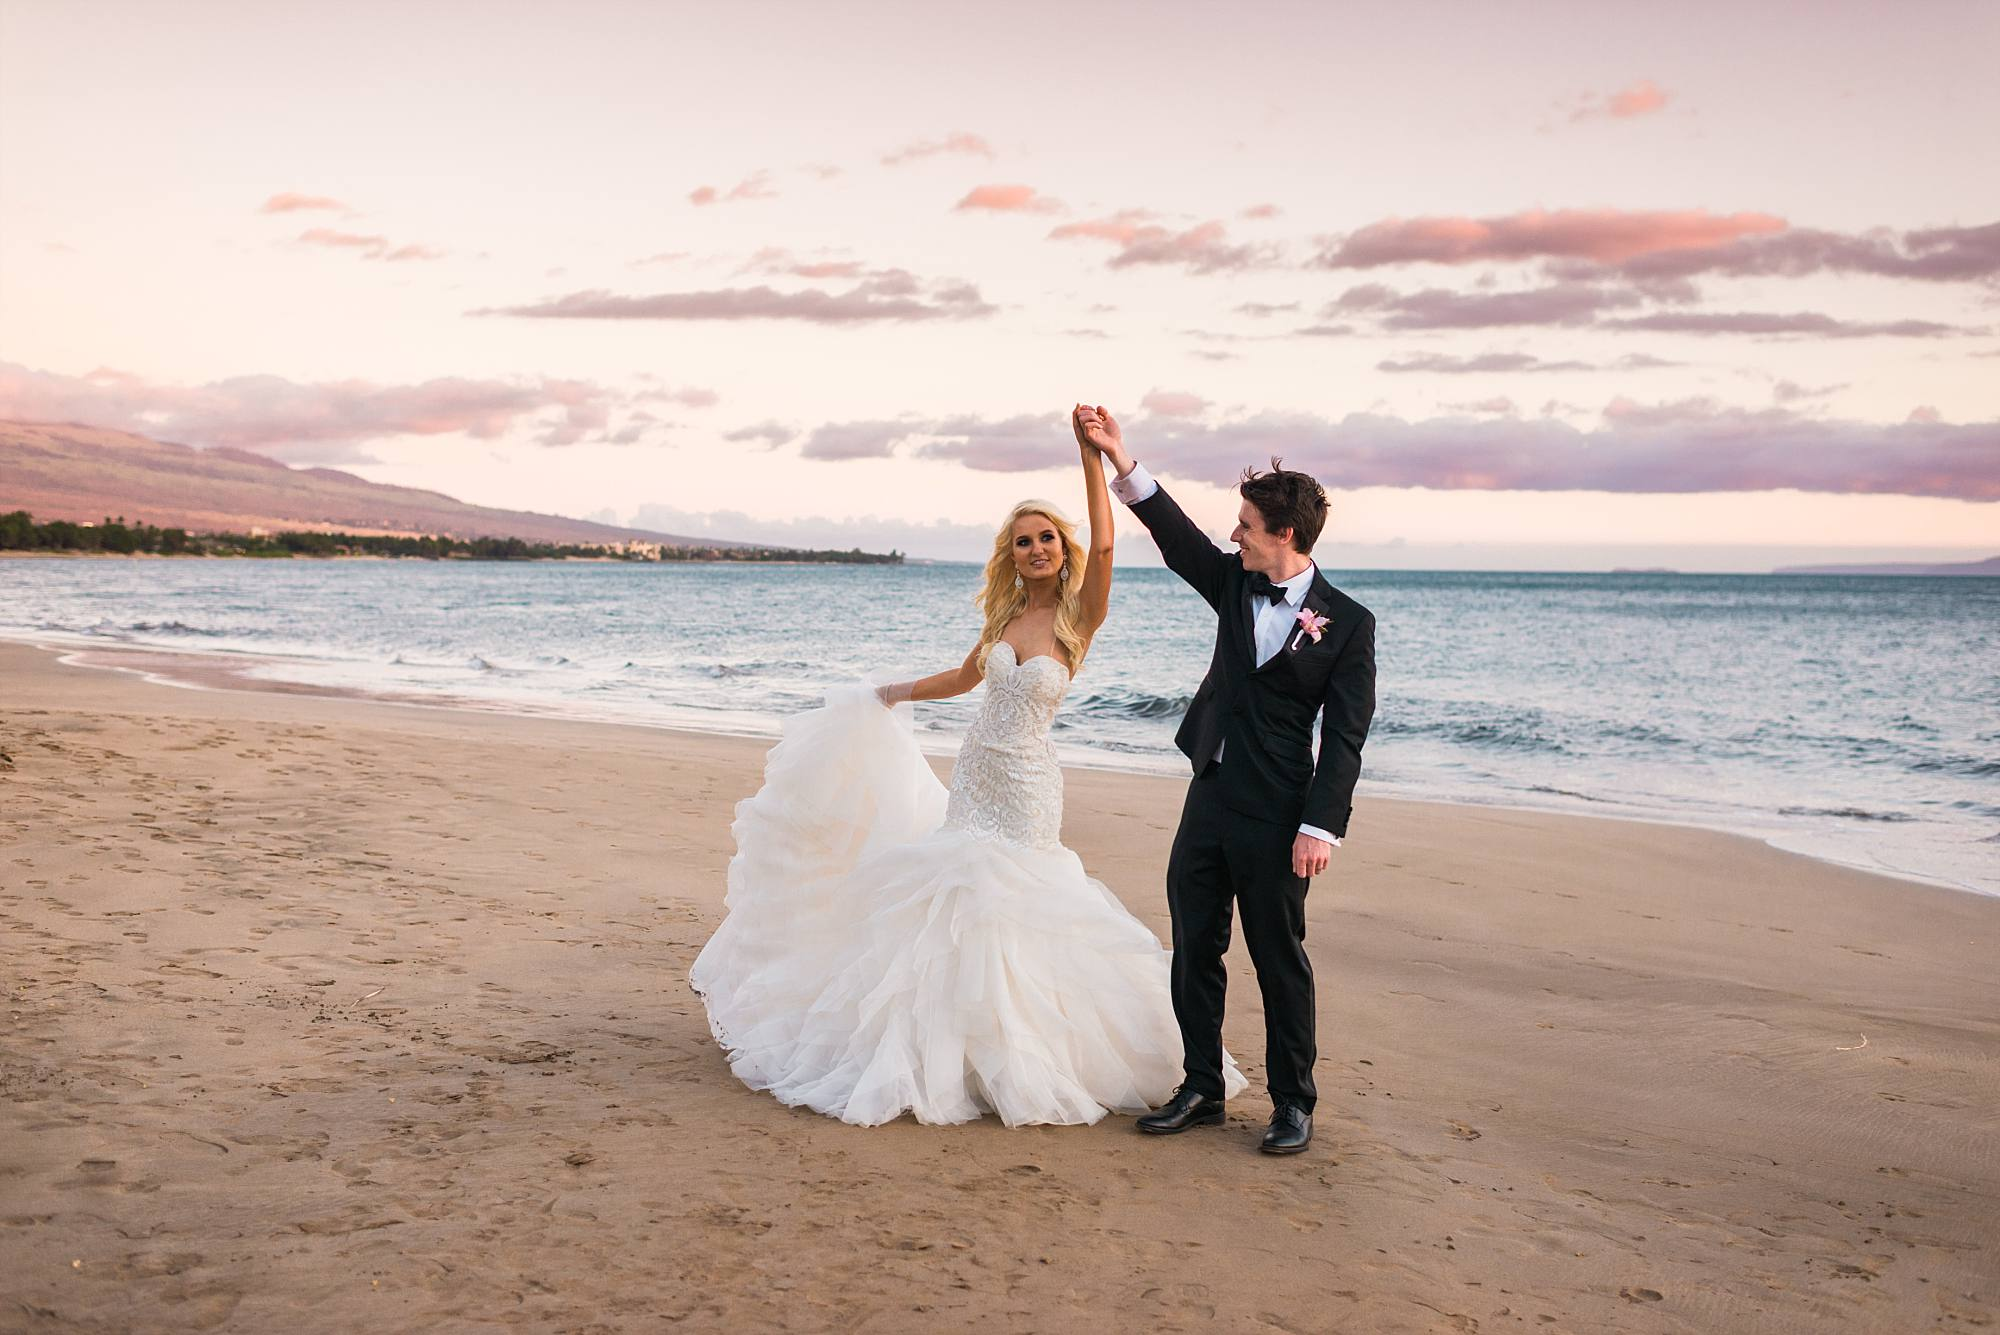 husband twirling his new wife on beach at sunset, pink clouds in sky